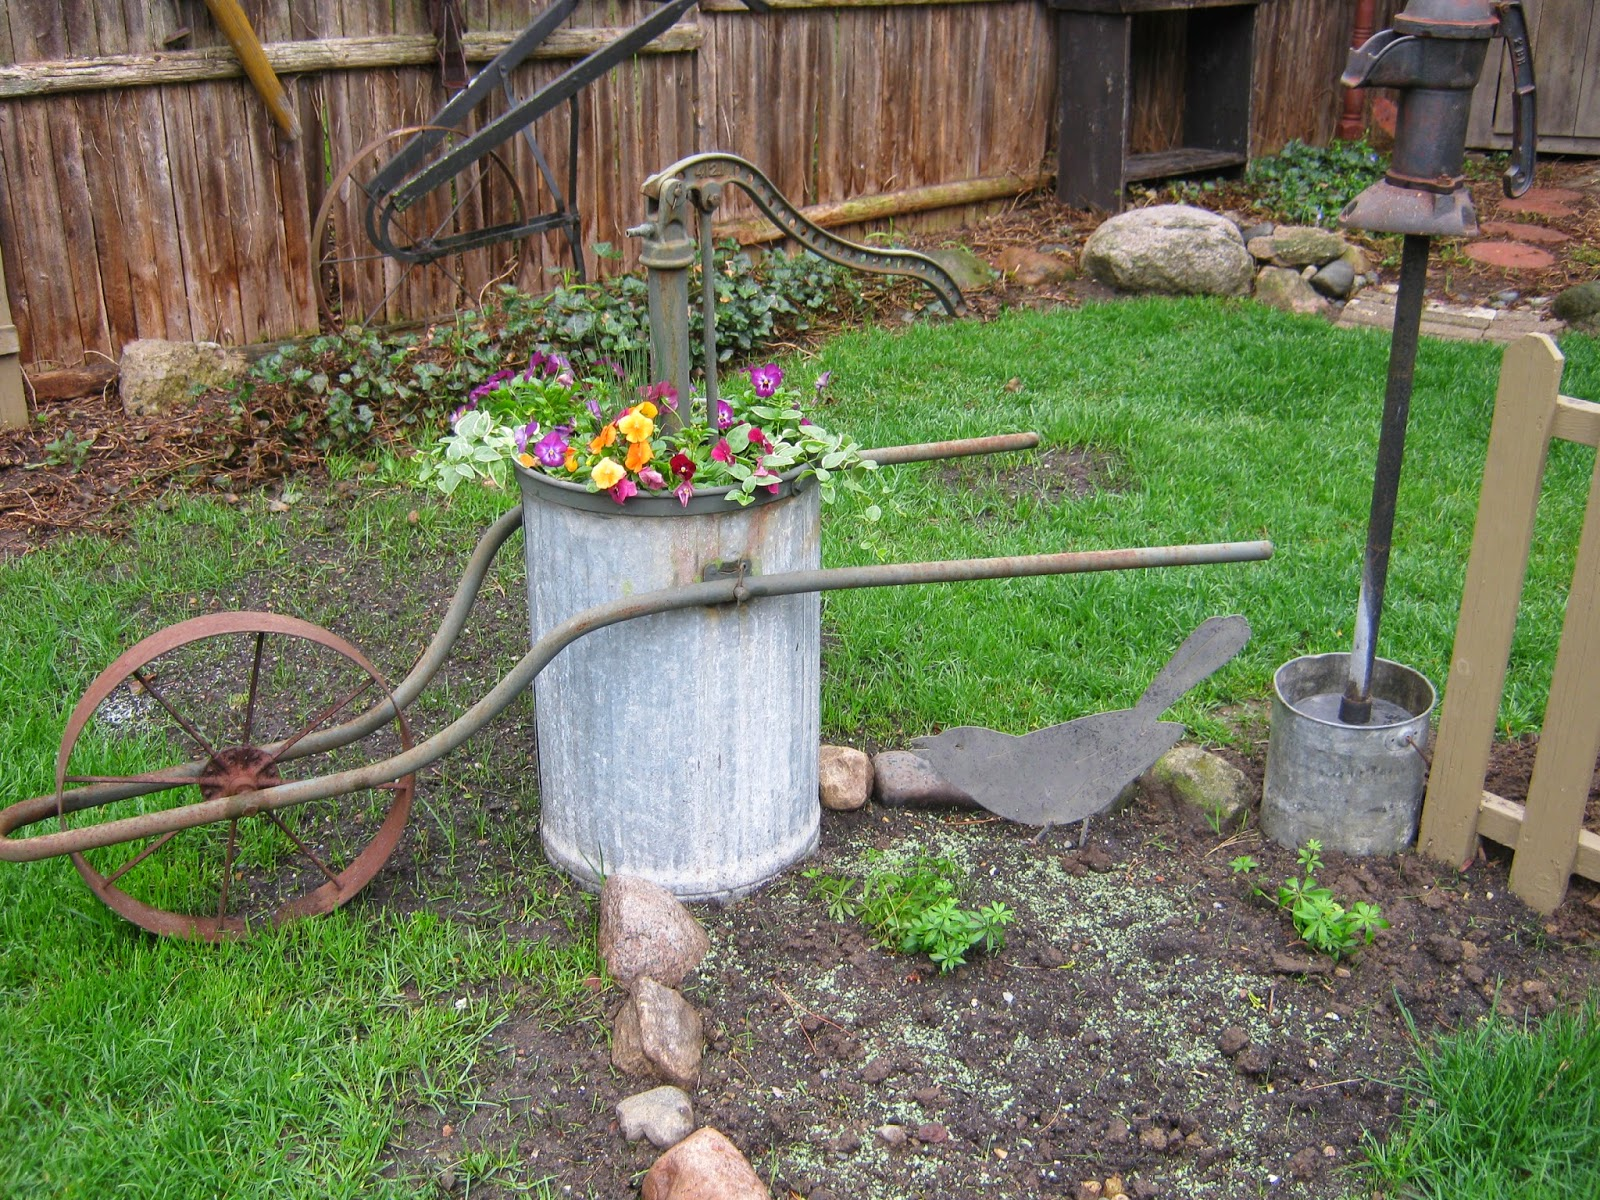 Primitive passion decorating garden pics to share for for Garden and outdoor decor